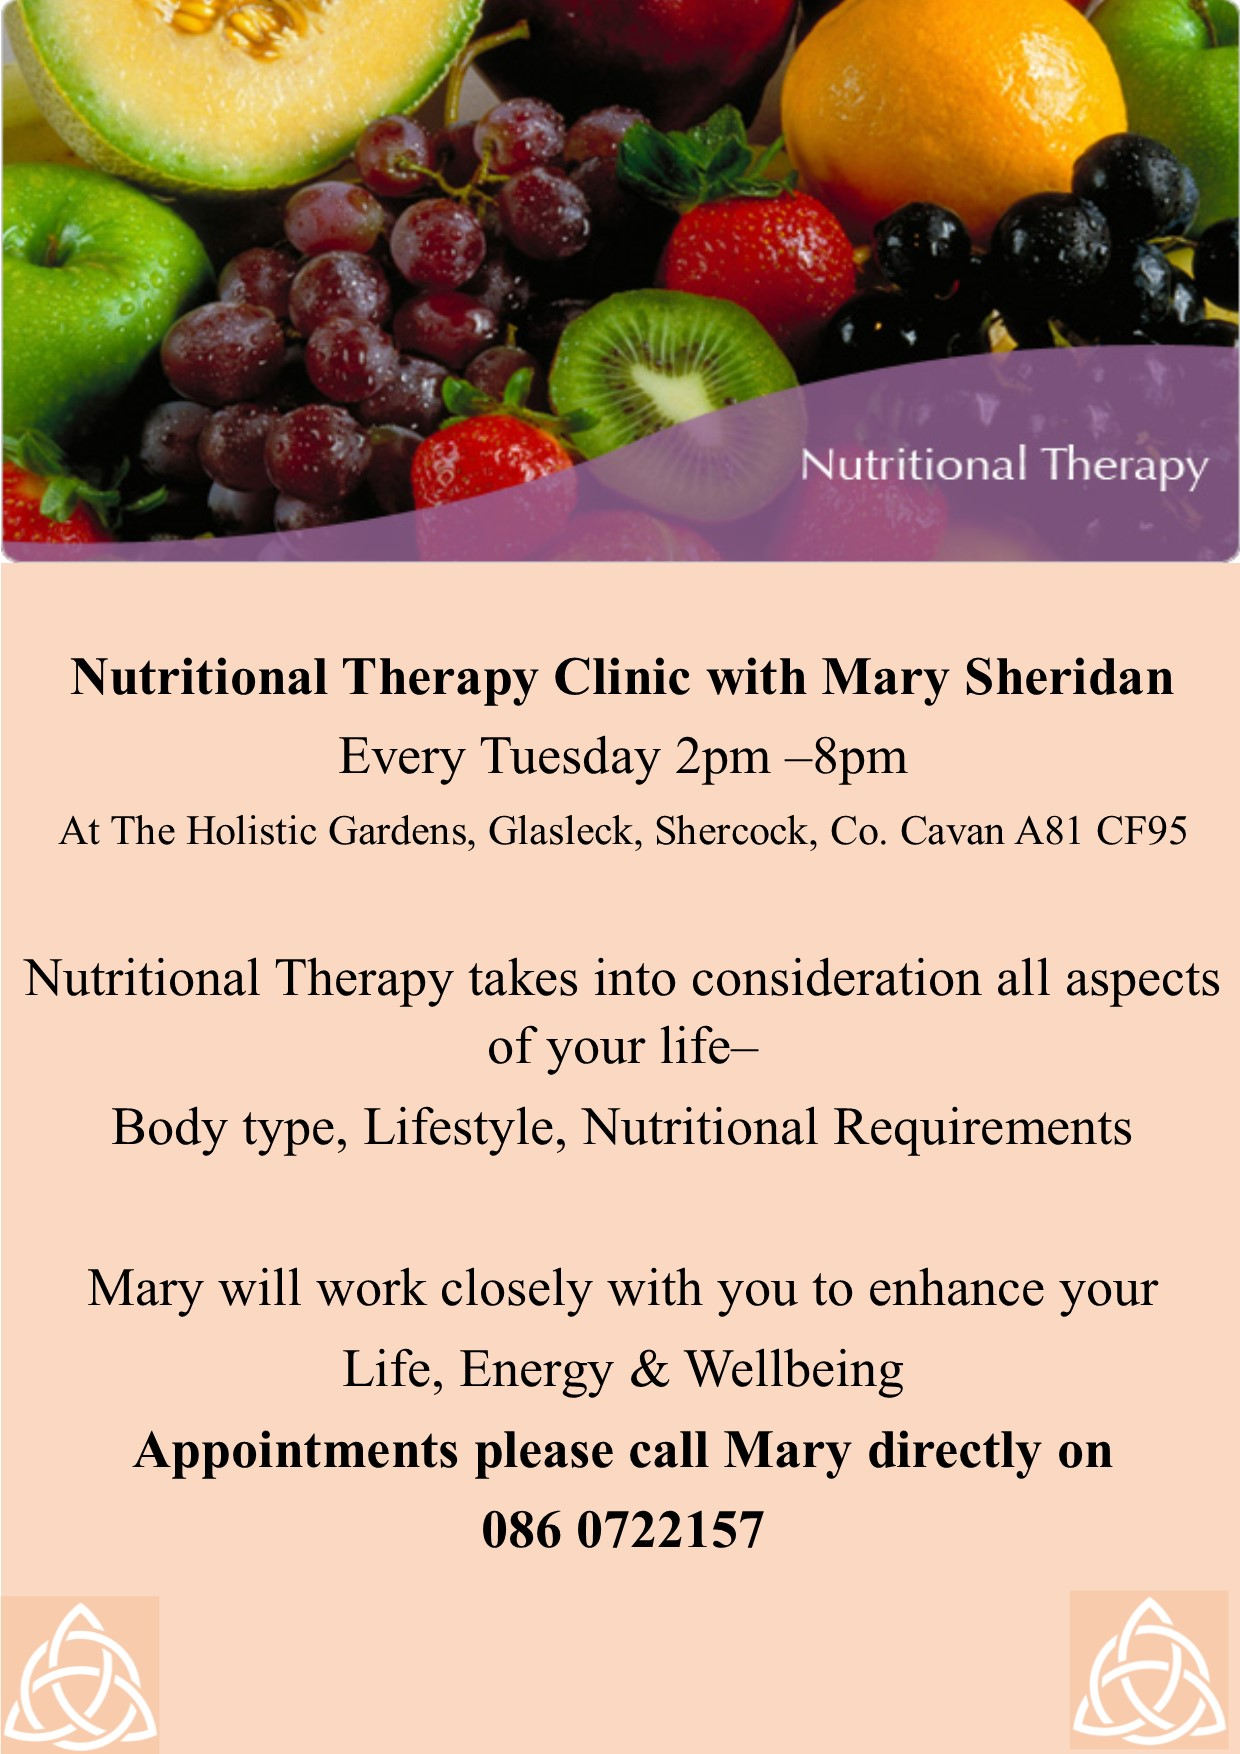 Nutritional Therapy Clinic